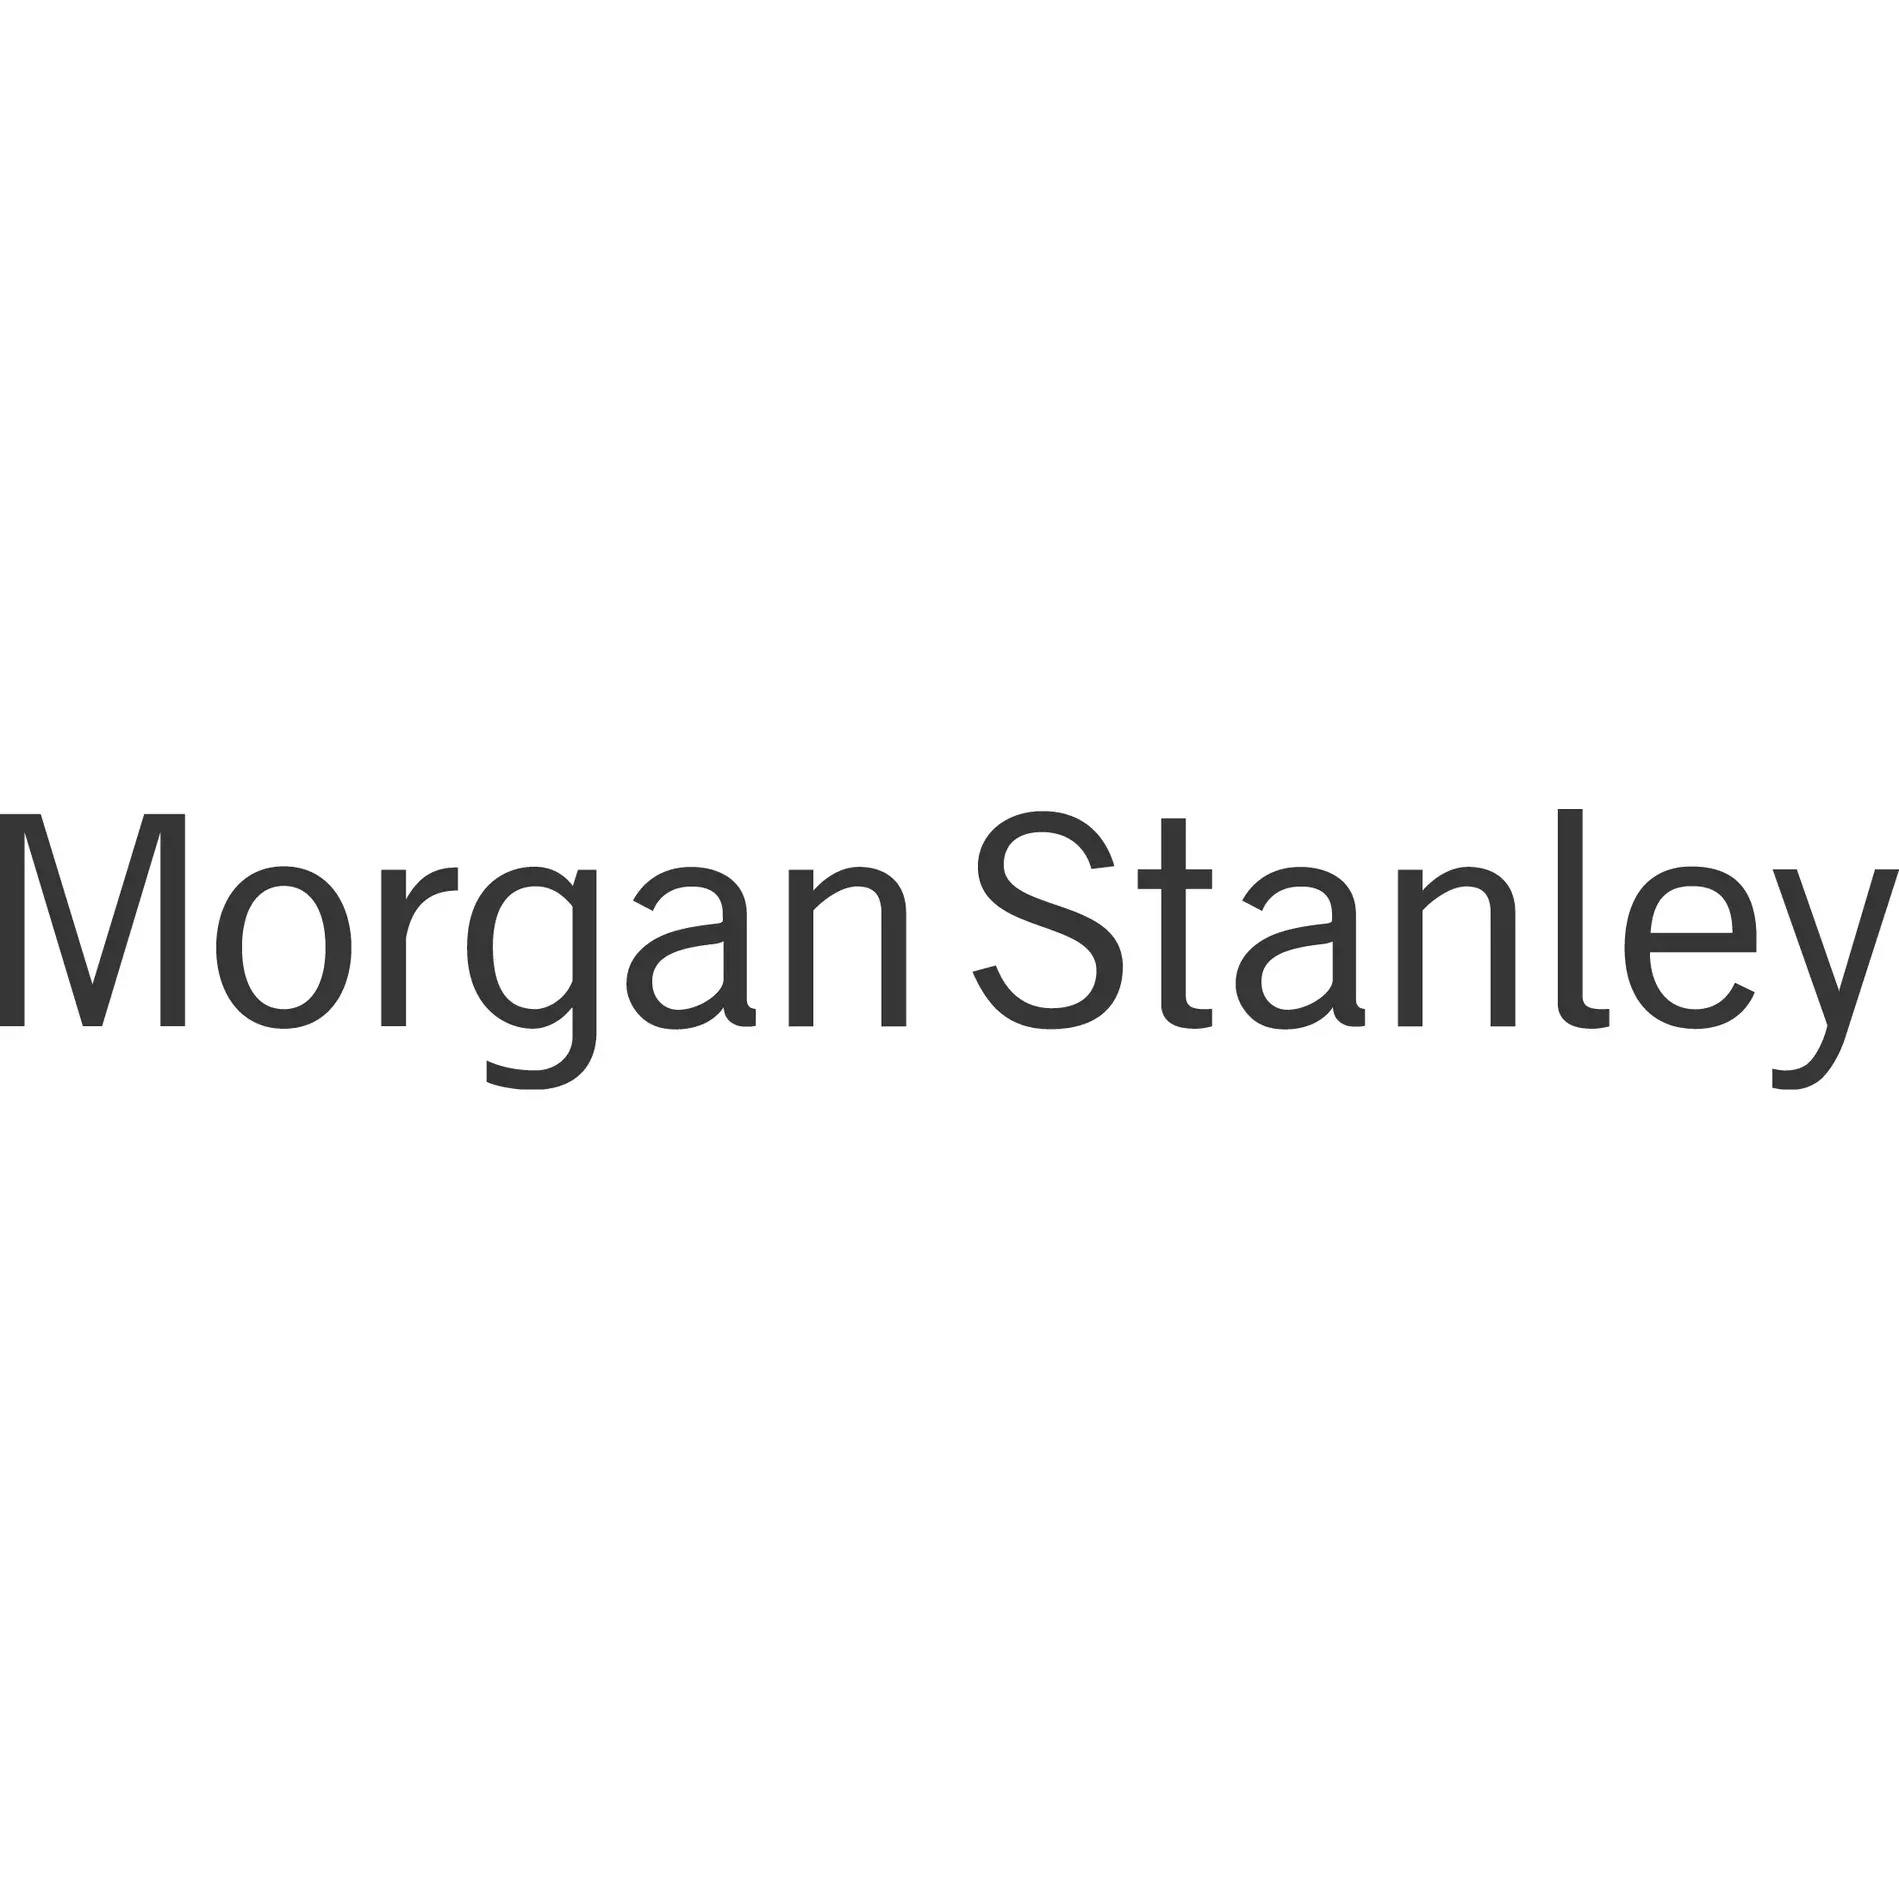 Leo Tsai - Morgan Stanley | Financial Advisor in Irvine,California